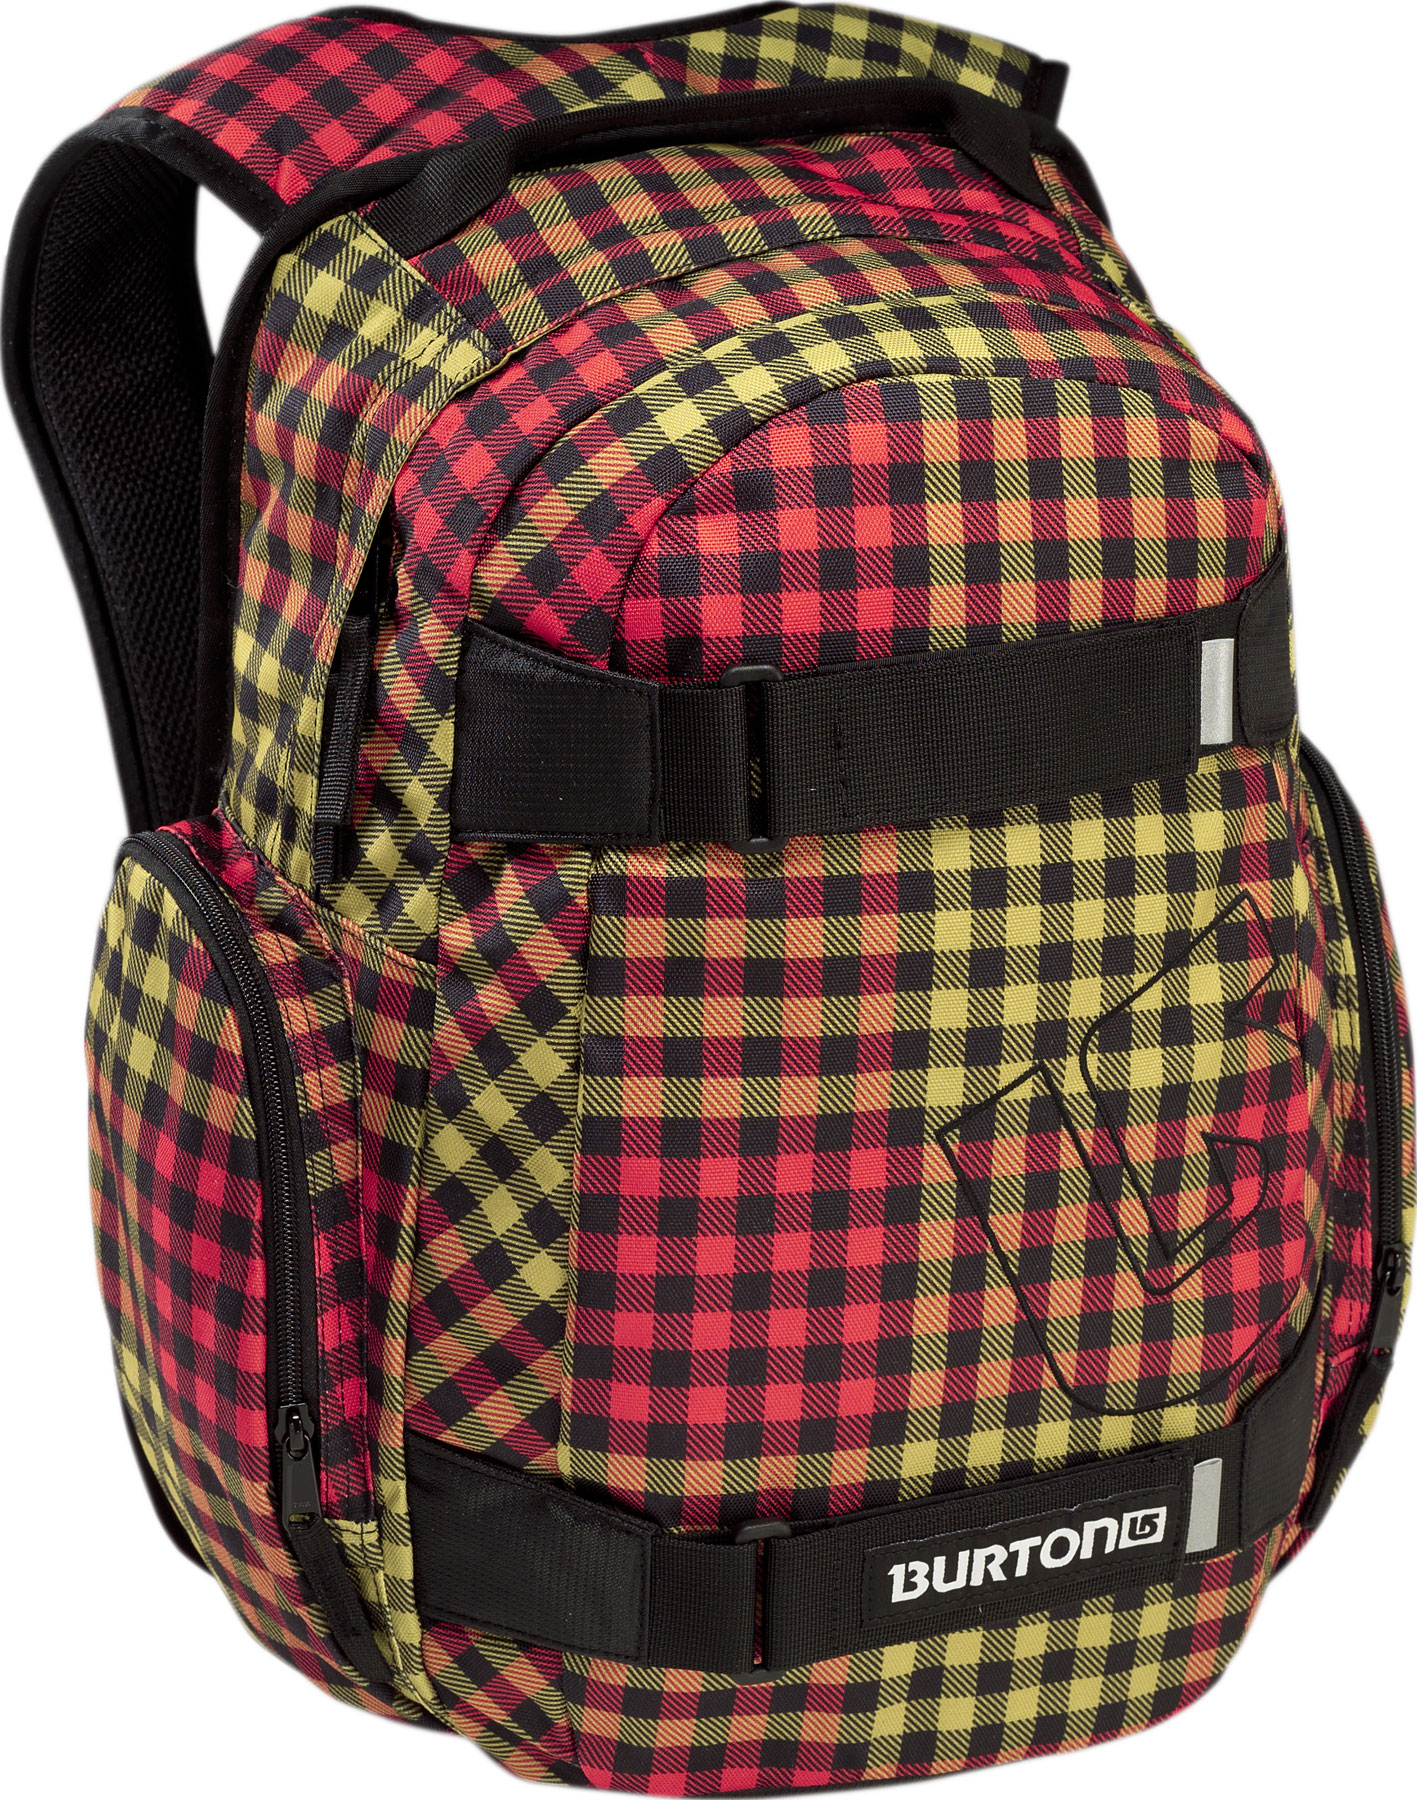 Skateboard Burton's Treble Yell backpack is a fashionable bag is packed with features. It includes a laptop pocket, an ergonomic shoulder harness and vertical skate carry straps. The vertical skate carry allows you to strap your skateboard or snowboard to your bag and carry it anywhere with ease. It also has two pockets and two side pockets to provide ample storage for all your boarding needs. Wear a Treble Yell Pack and you will be the envy of the mountain.Key Features of the Burton Treble Yell Backpack: 23L [17in x 11.5in x 7in] [43cm x 29.25cm x 18cm] Weight: 1.25 lbs [0.57 kg] Fabrication: 600D Polyester / 300D Polyester Dobby Padded Laptop Pocket [14in x 10in x 1in] [35.5cm x 25.5cm x 2.5cm] Vertical Skate Carry Cush Ergonomic Shoulder Harness - $22.95